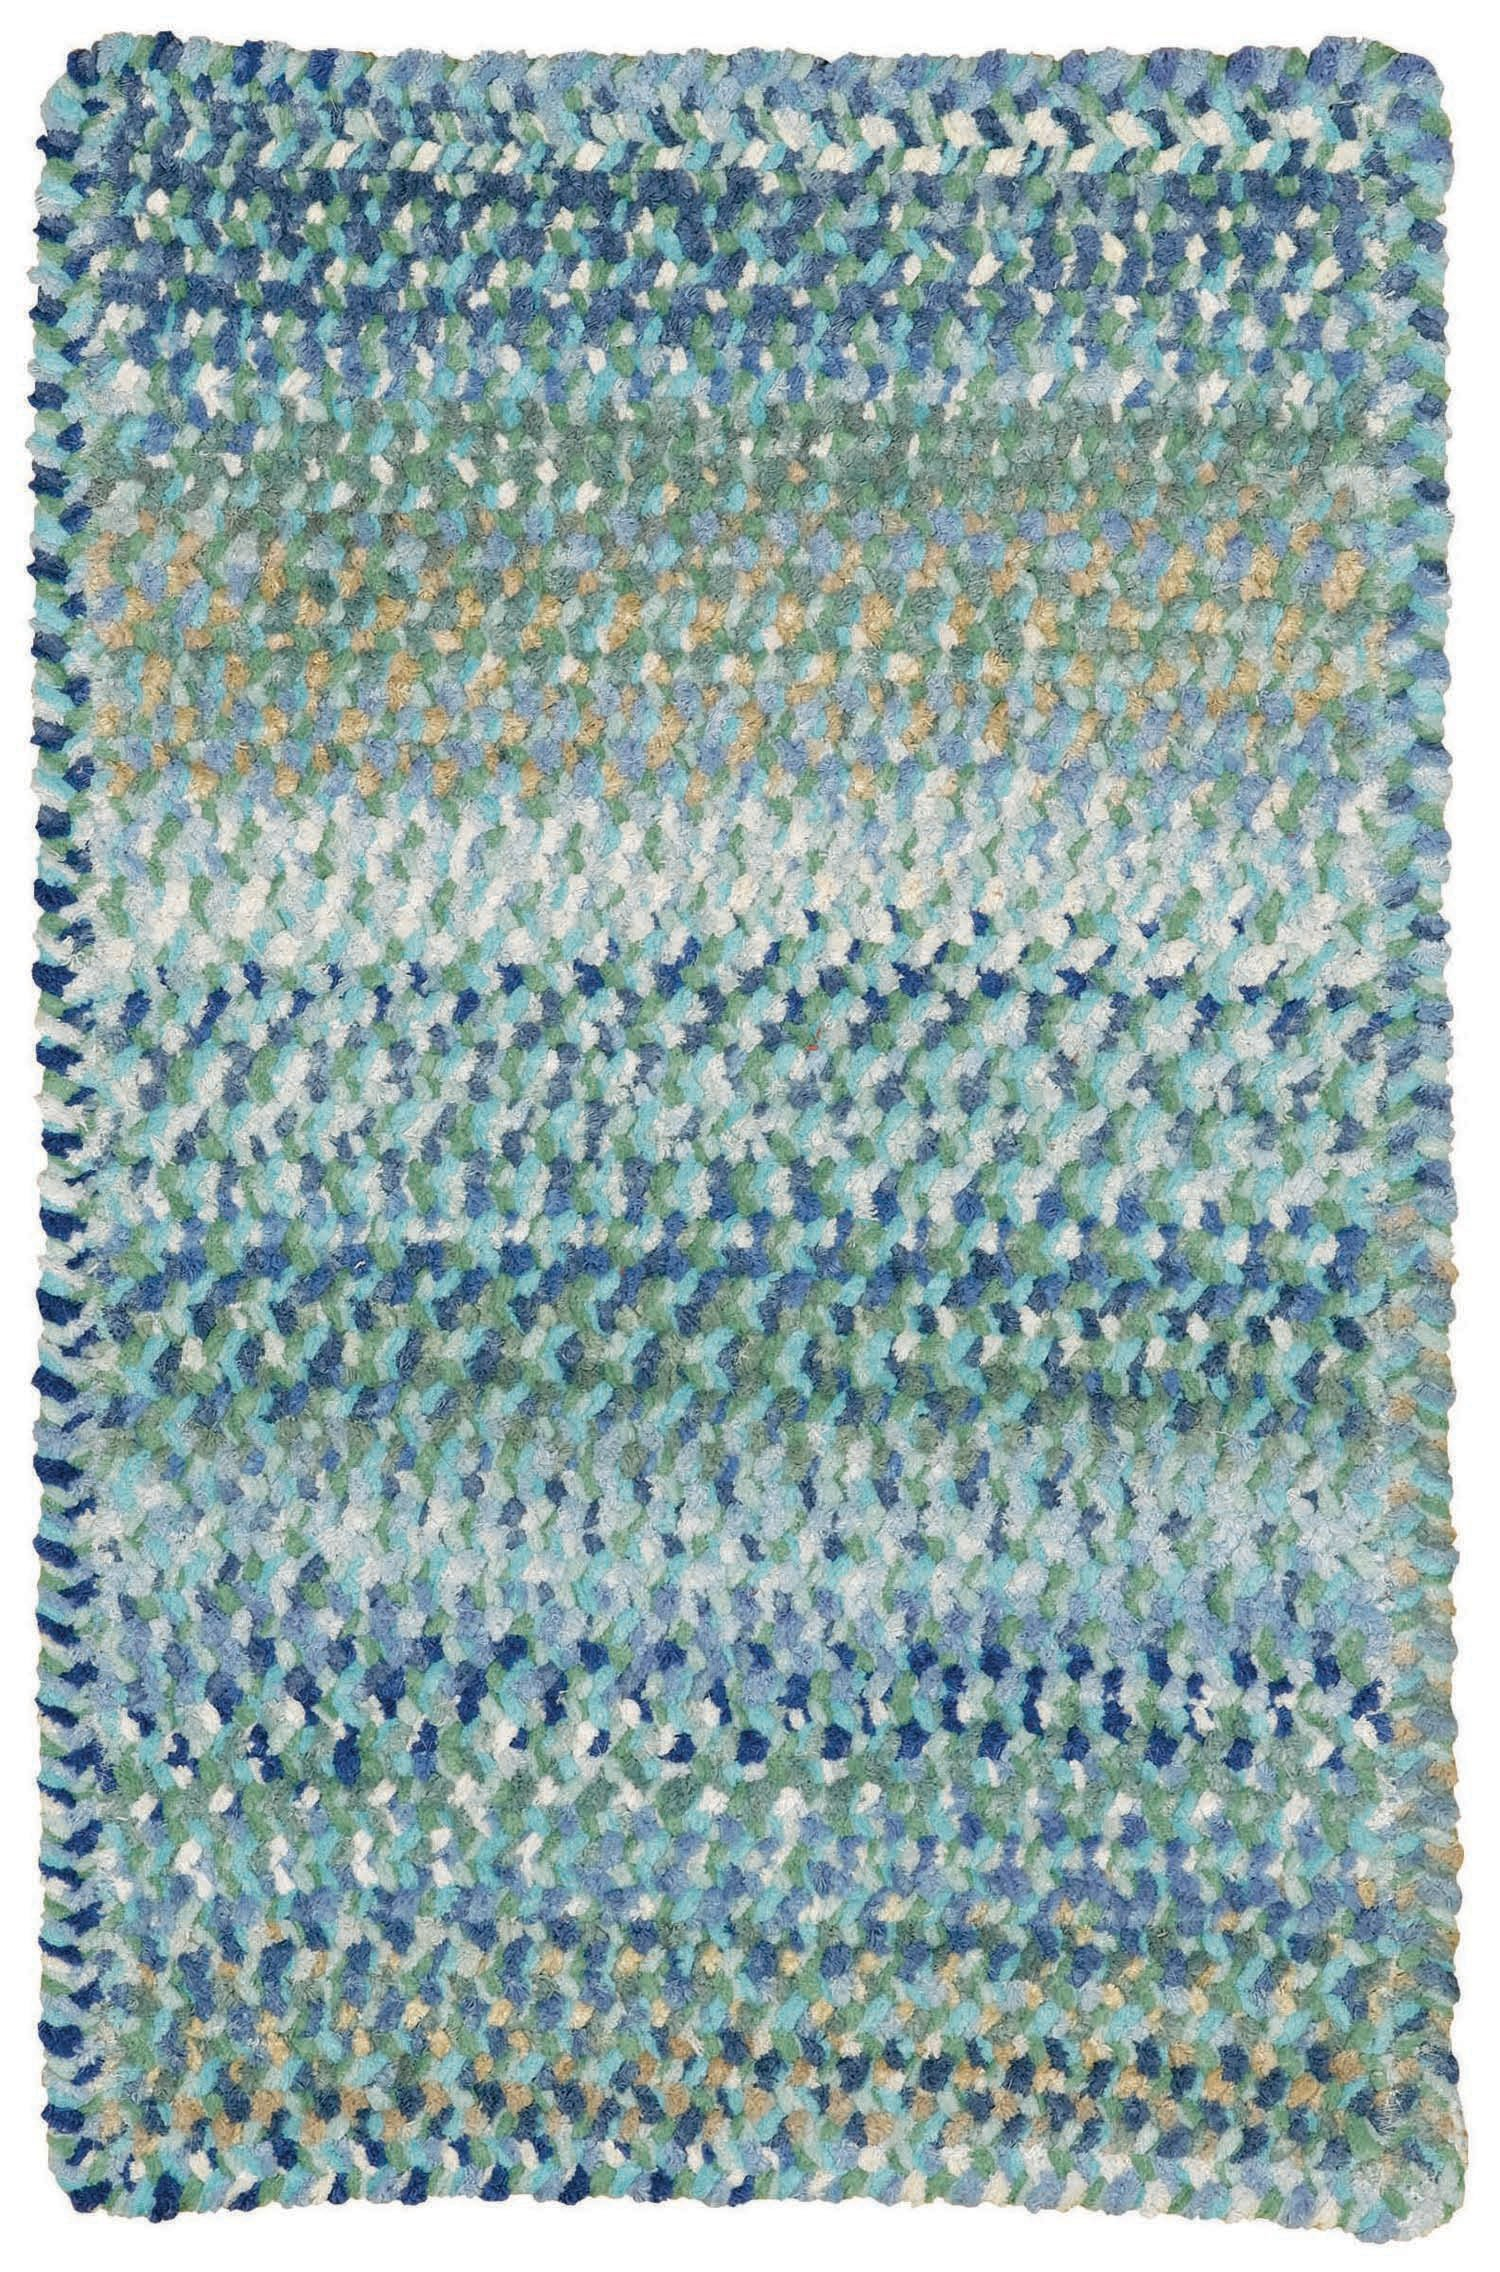 Capel Rugs Ocracoke Cross Sewn Rectangle Braided Area Rug, 24'' x 36'', Light Blue